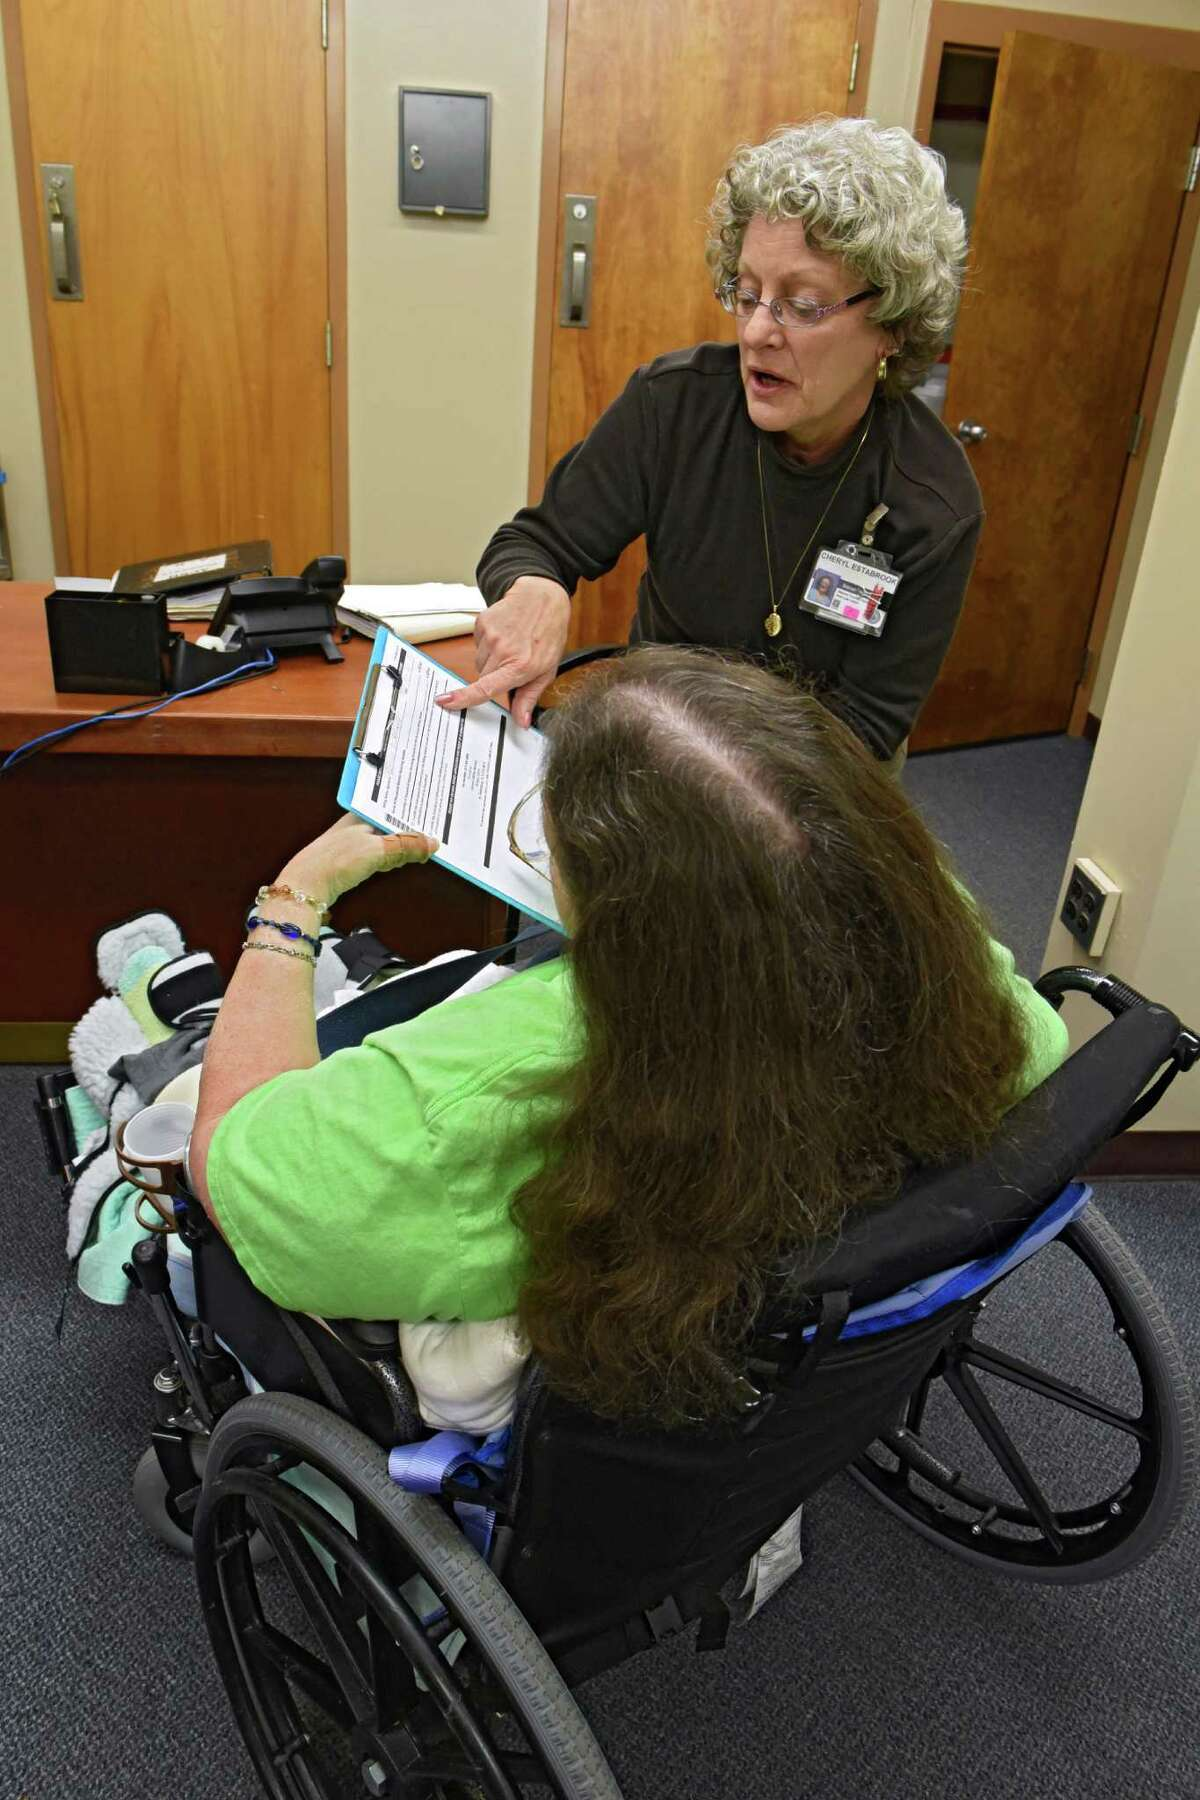 Social worker Cheryl Estabrook, standing, helps a resident at the Albany County Nursing Home on Monday, Nov. 21, 2016 in Colonie, N.Y. (Lori Van Buren / Times Union)